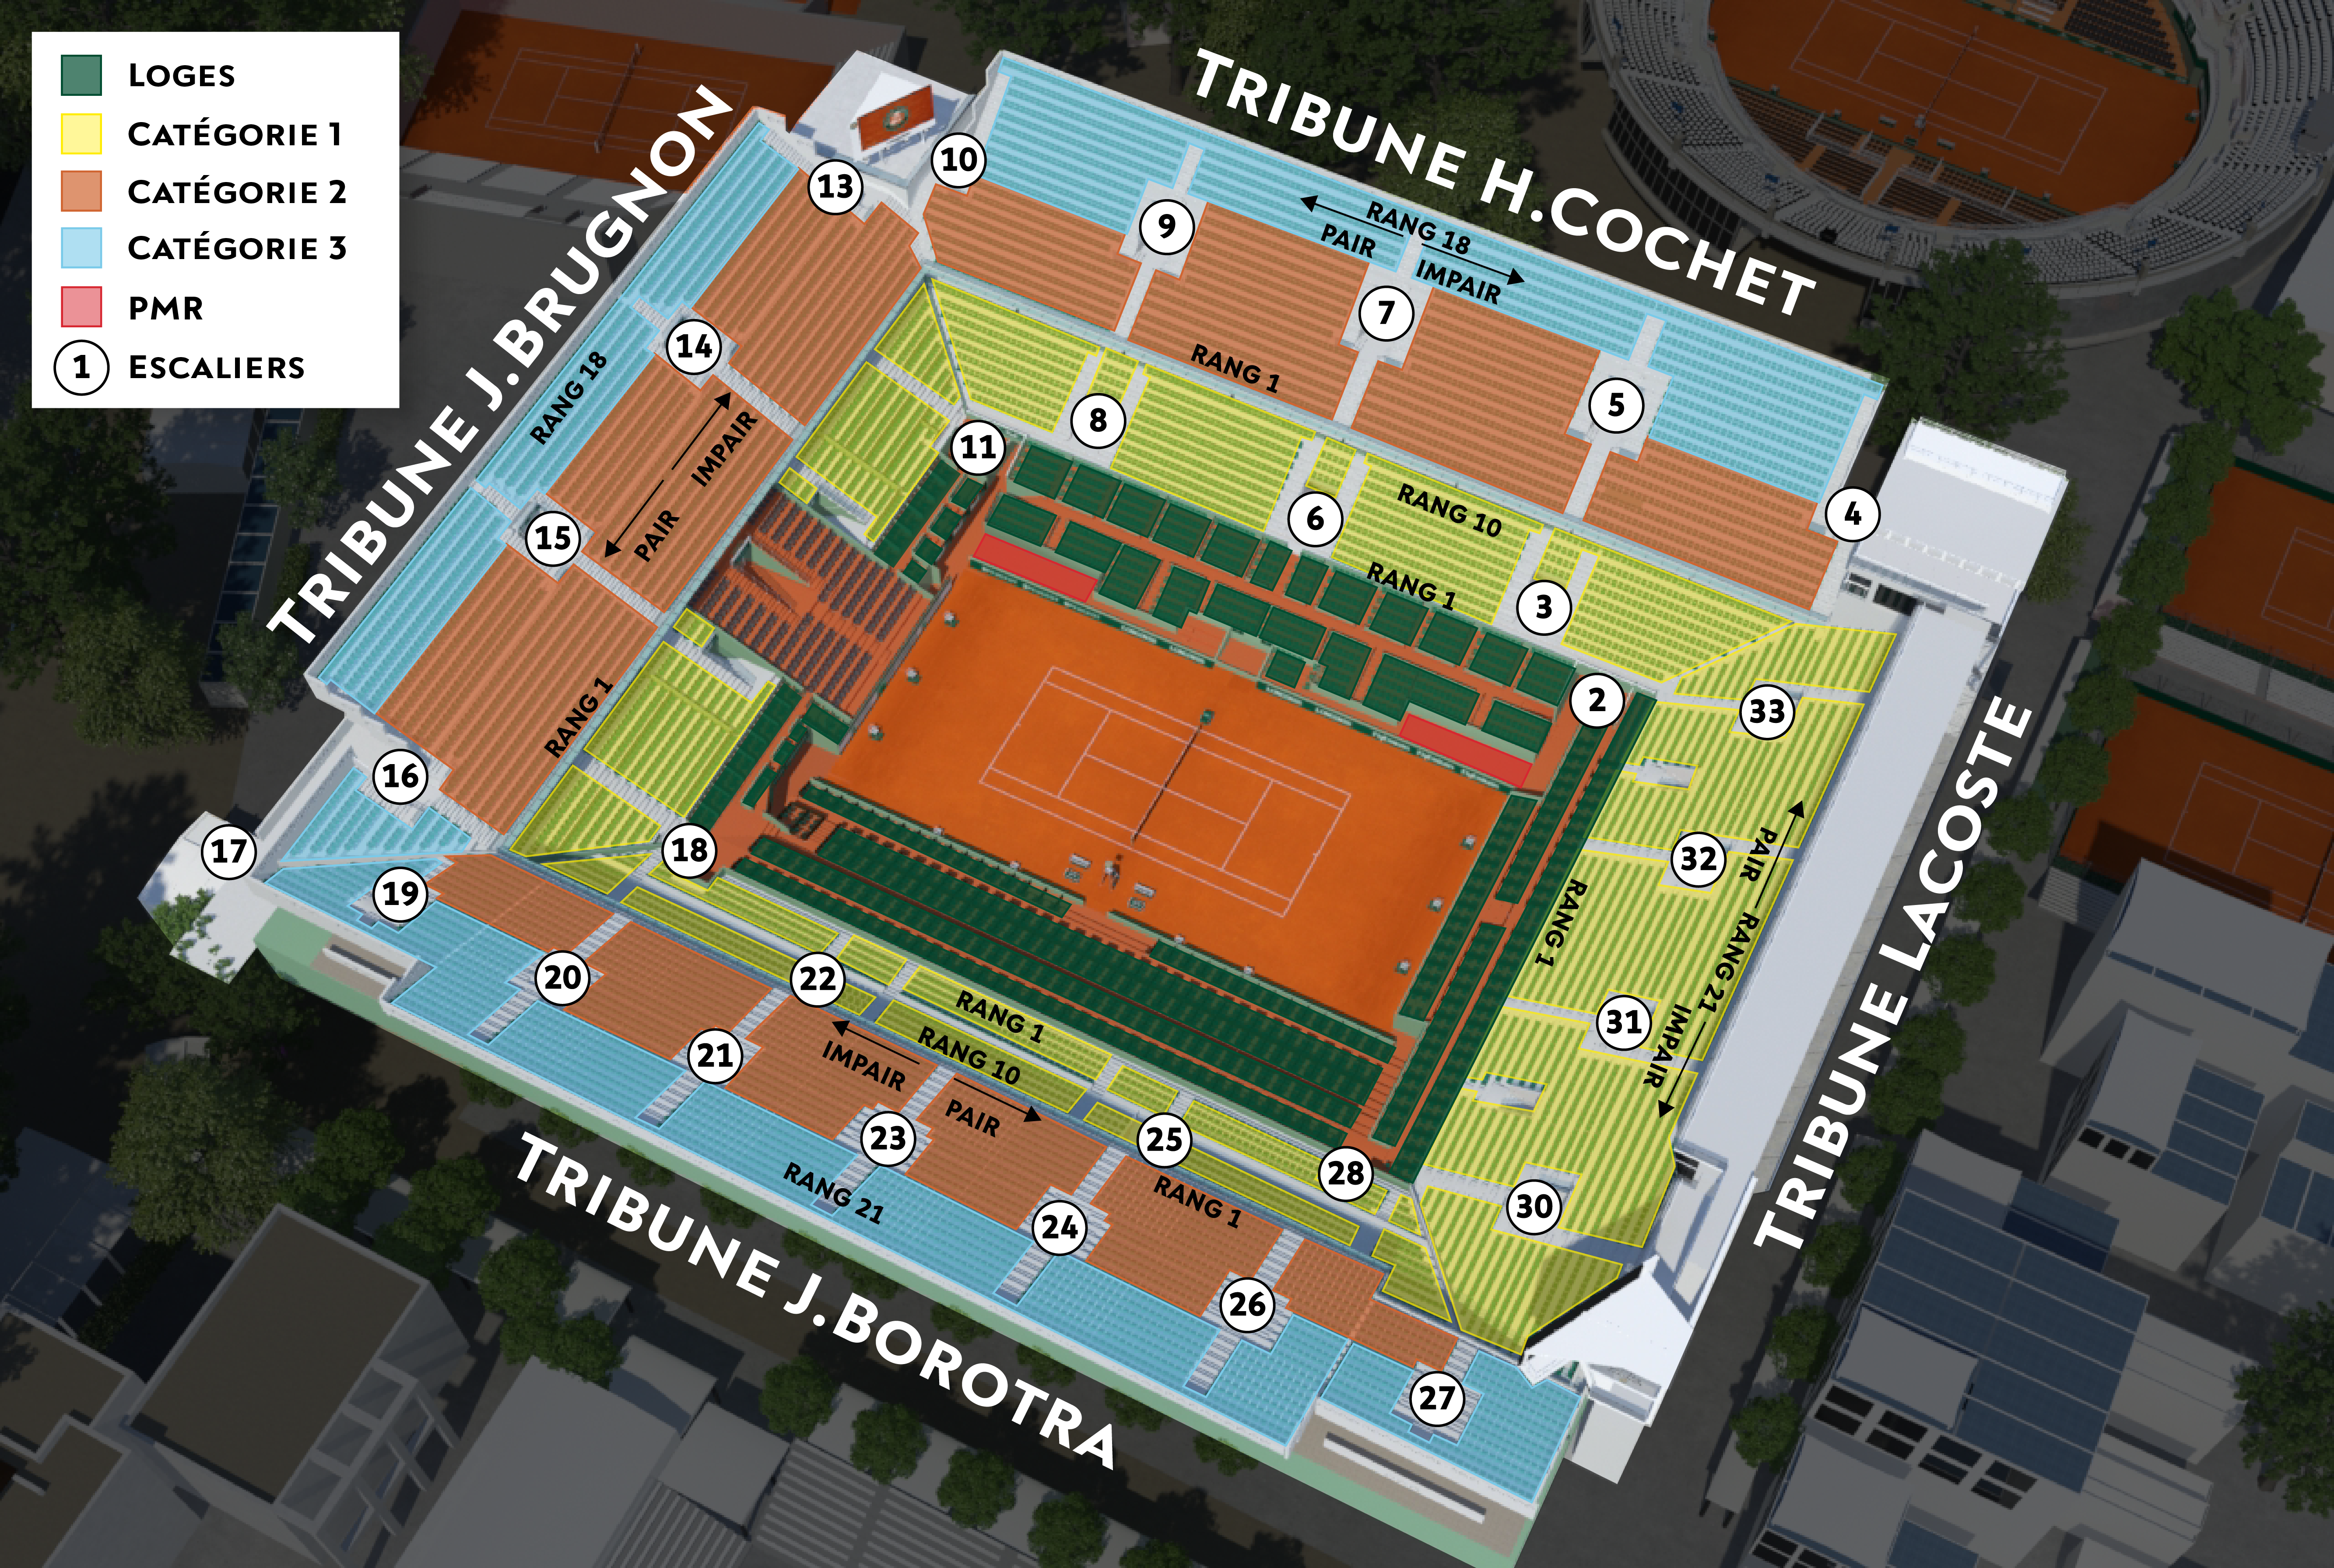 Roland Garros Location In Paris Map.How To Buy French Open Tickets Tennis Buzz